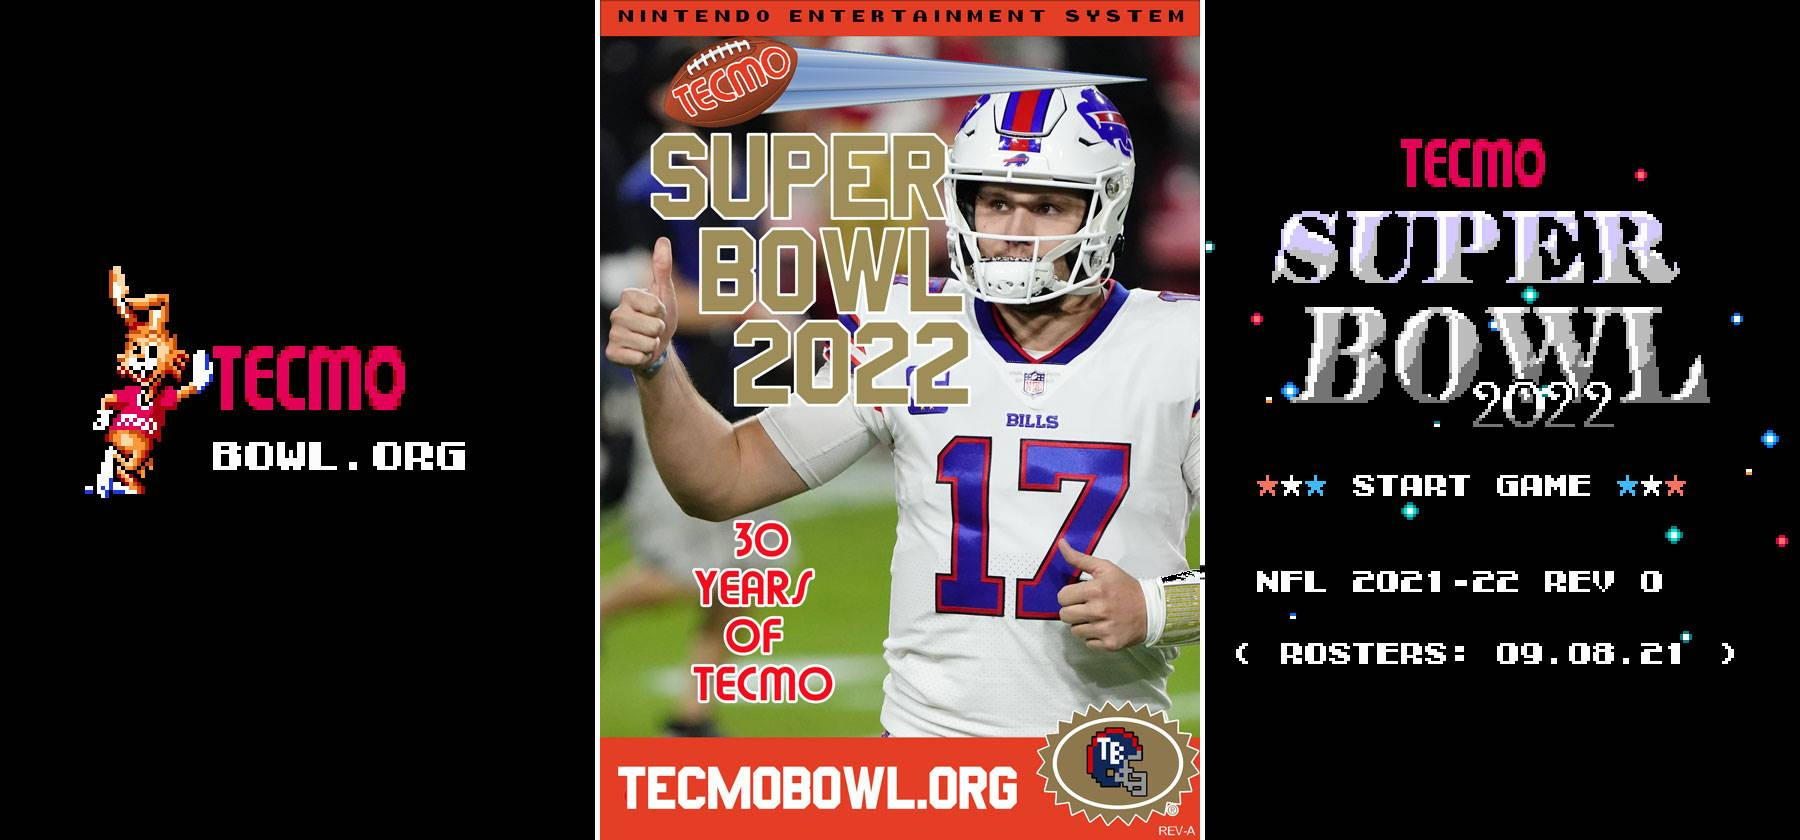 Tecmo Super Bowl 2022 Presented by TecmoBowl.org